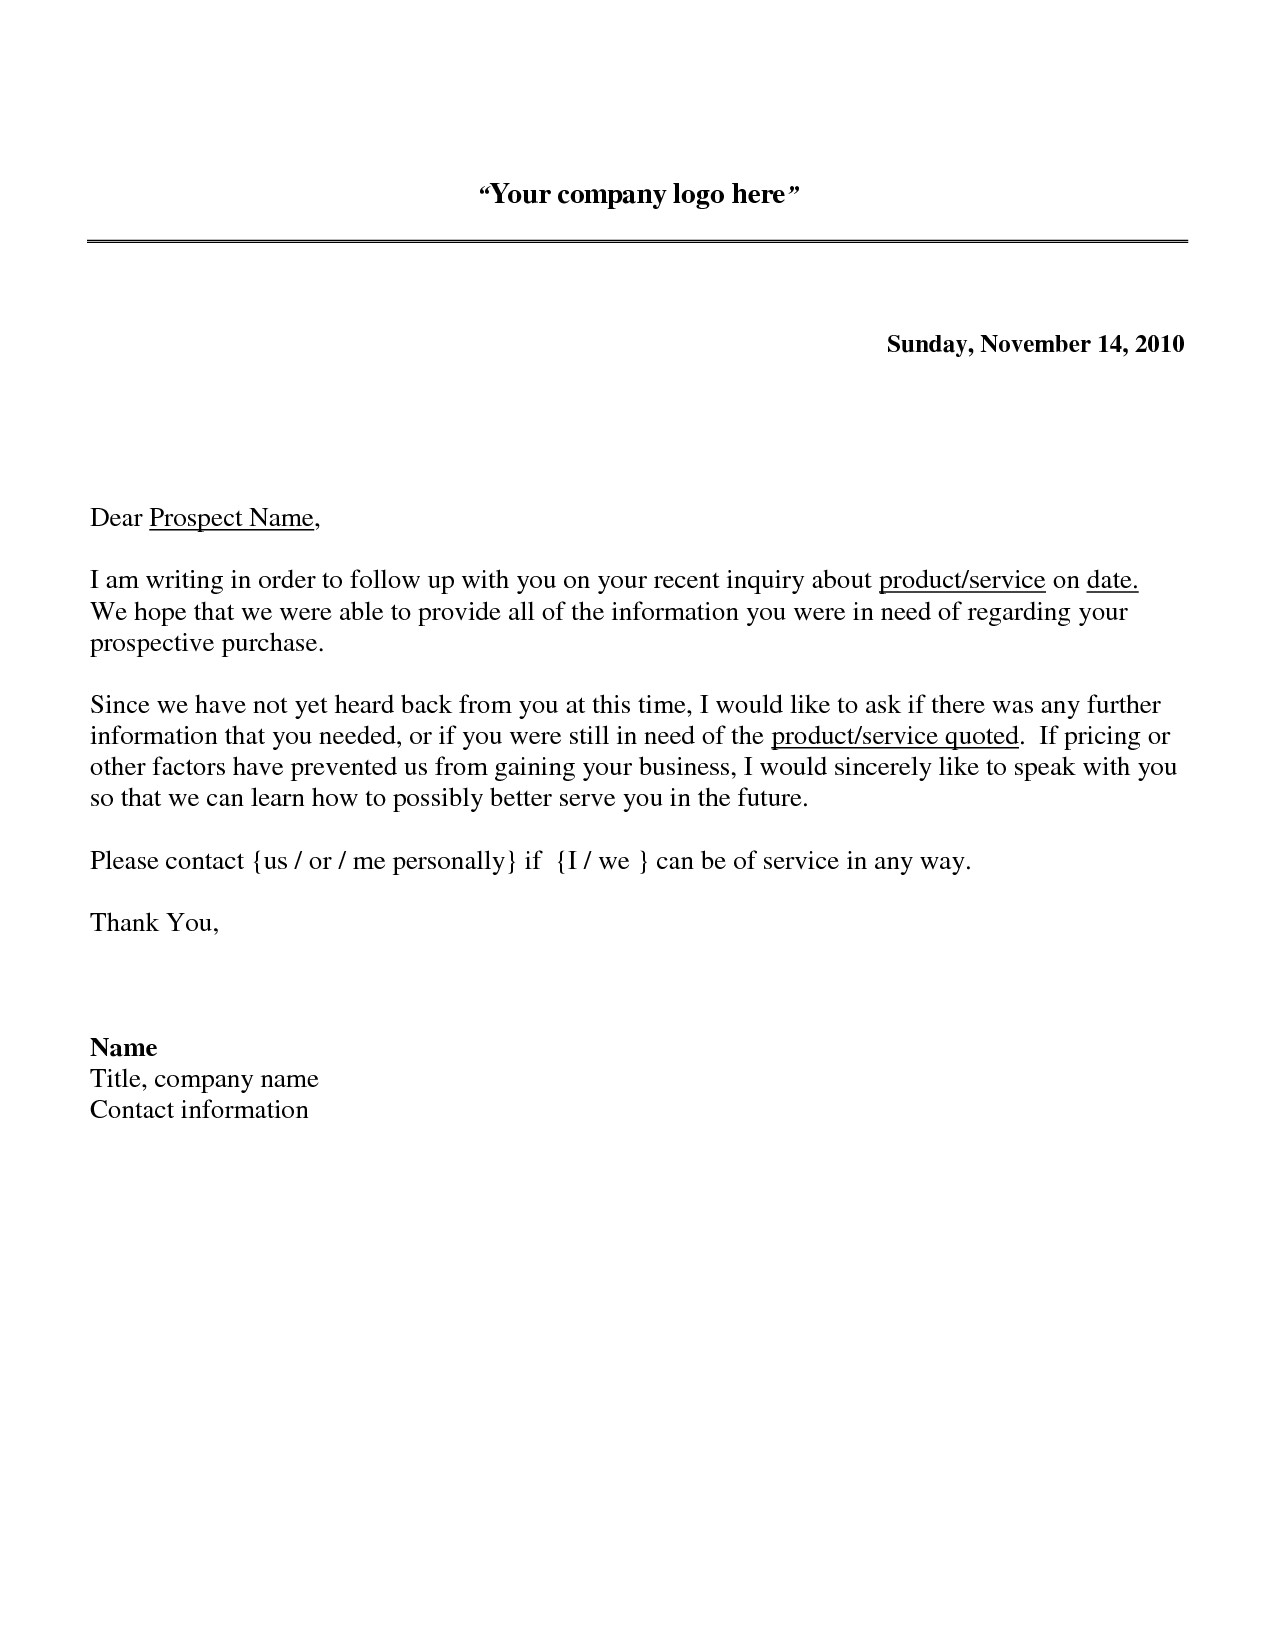 Manager Cover Letter Template - Sample Resume Cover Letter Property Management Fresh Food Service